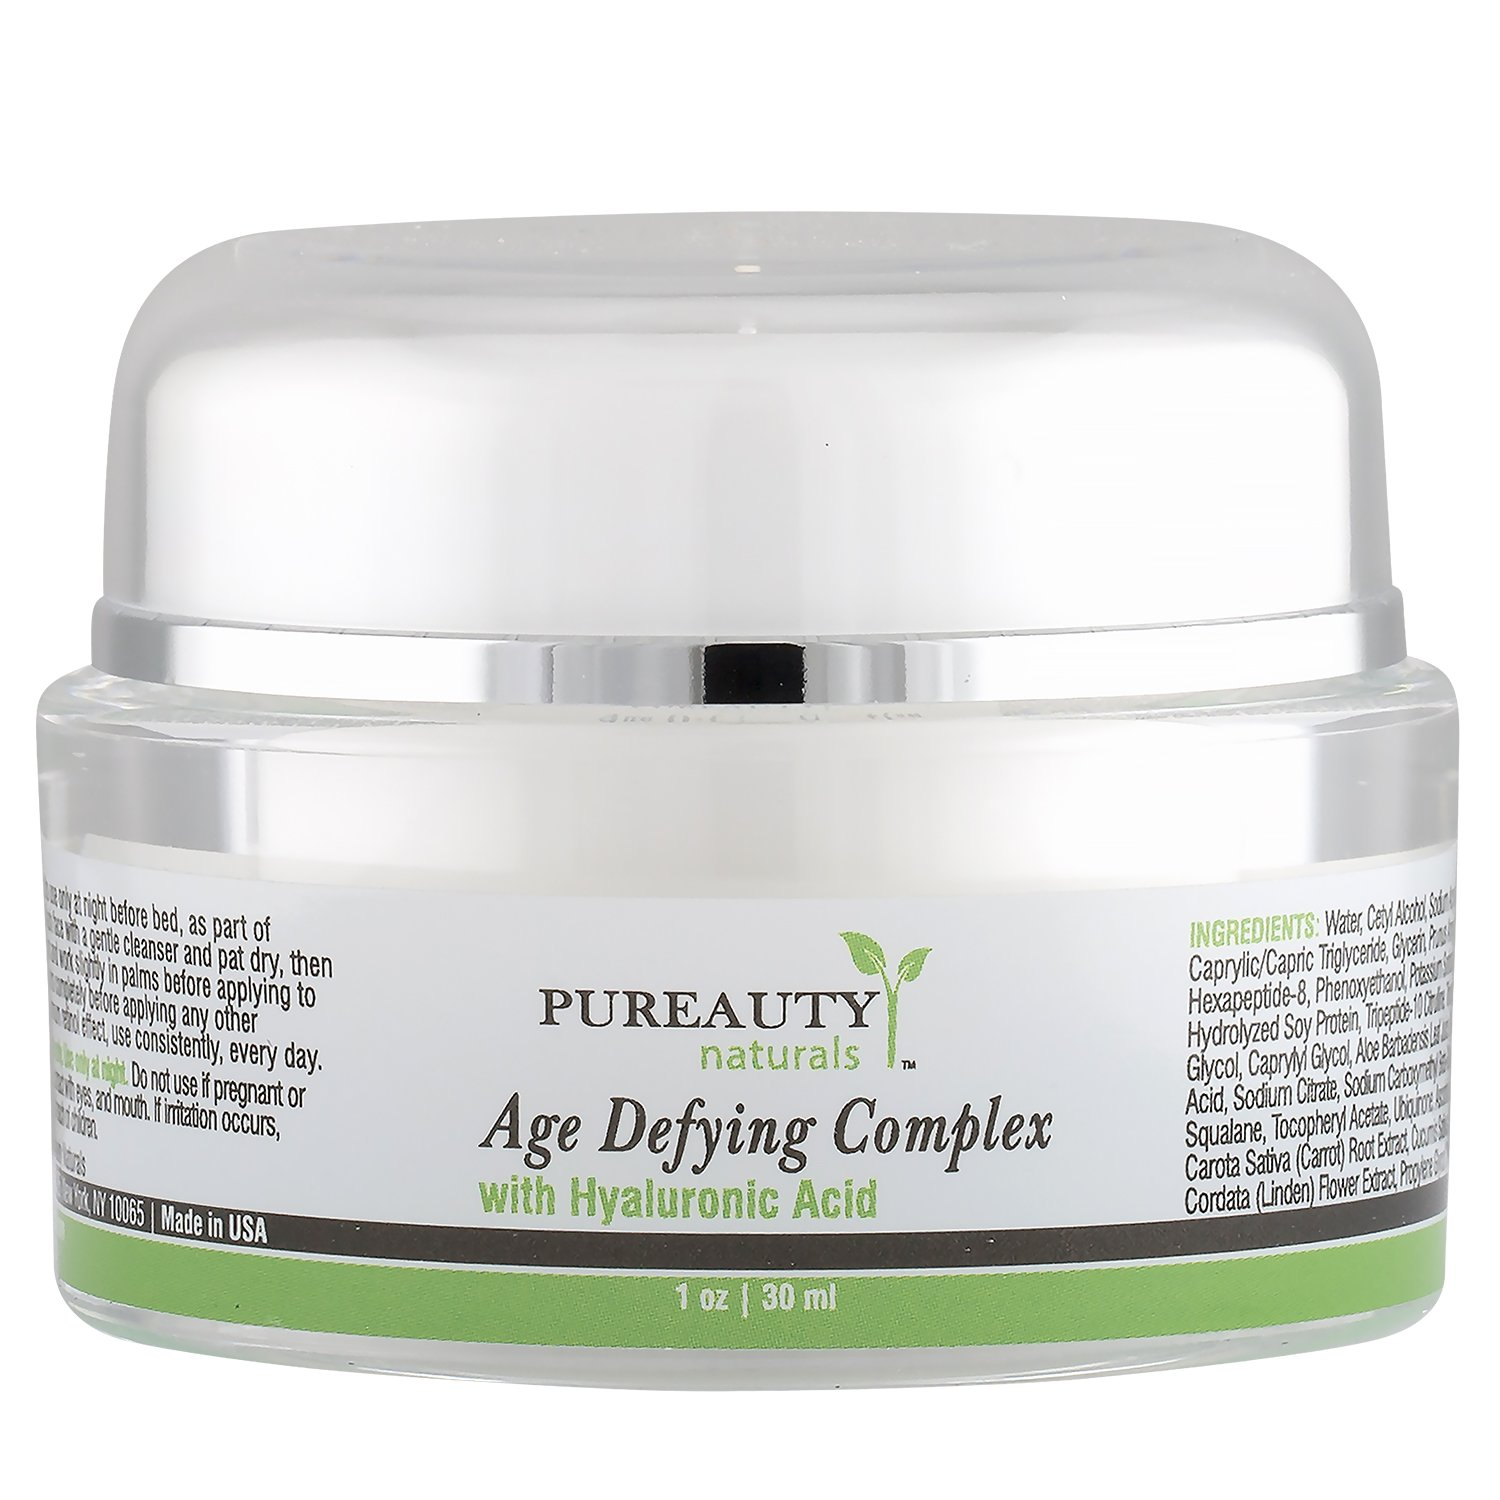 Anti Aging Cream Hyaluronic Acid and Retinol Powered Moisturizer To Help Reduce Wrinkles, Tighten and Hydrate Your Skin for Face and Neck by Pureauty Naturals by Pureauty Naturals